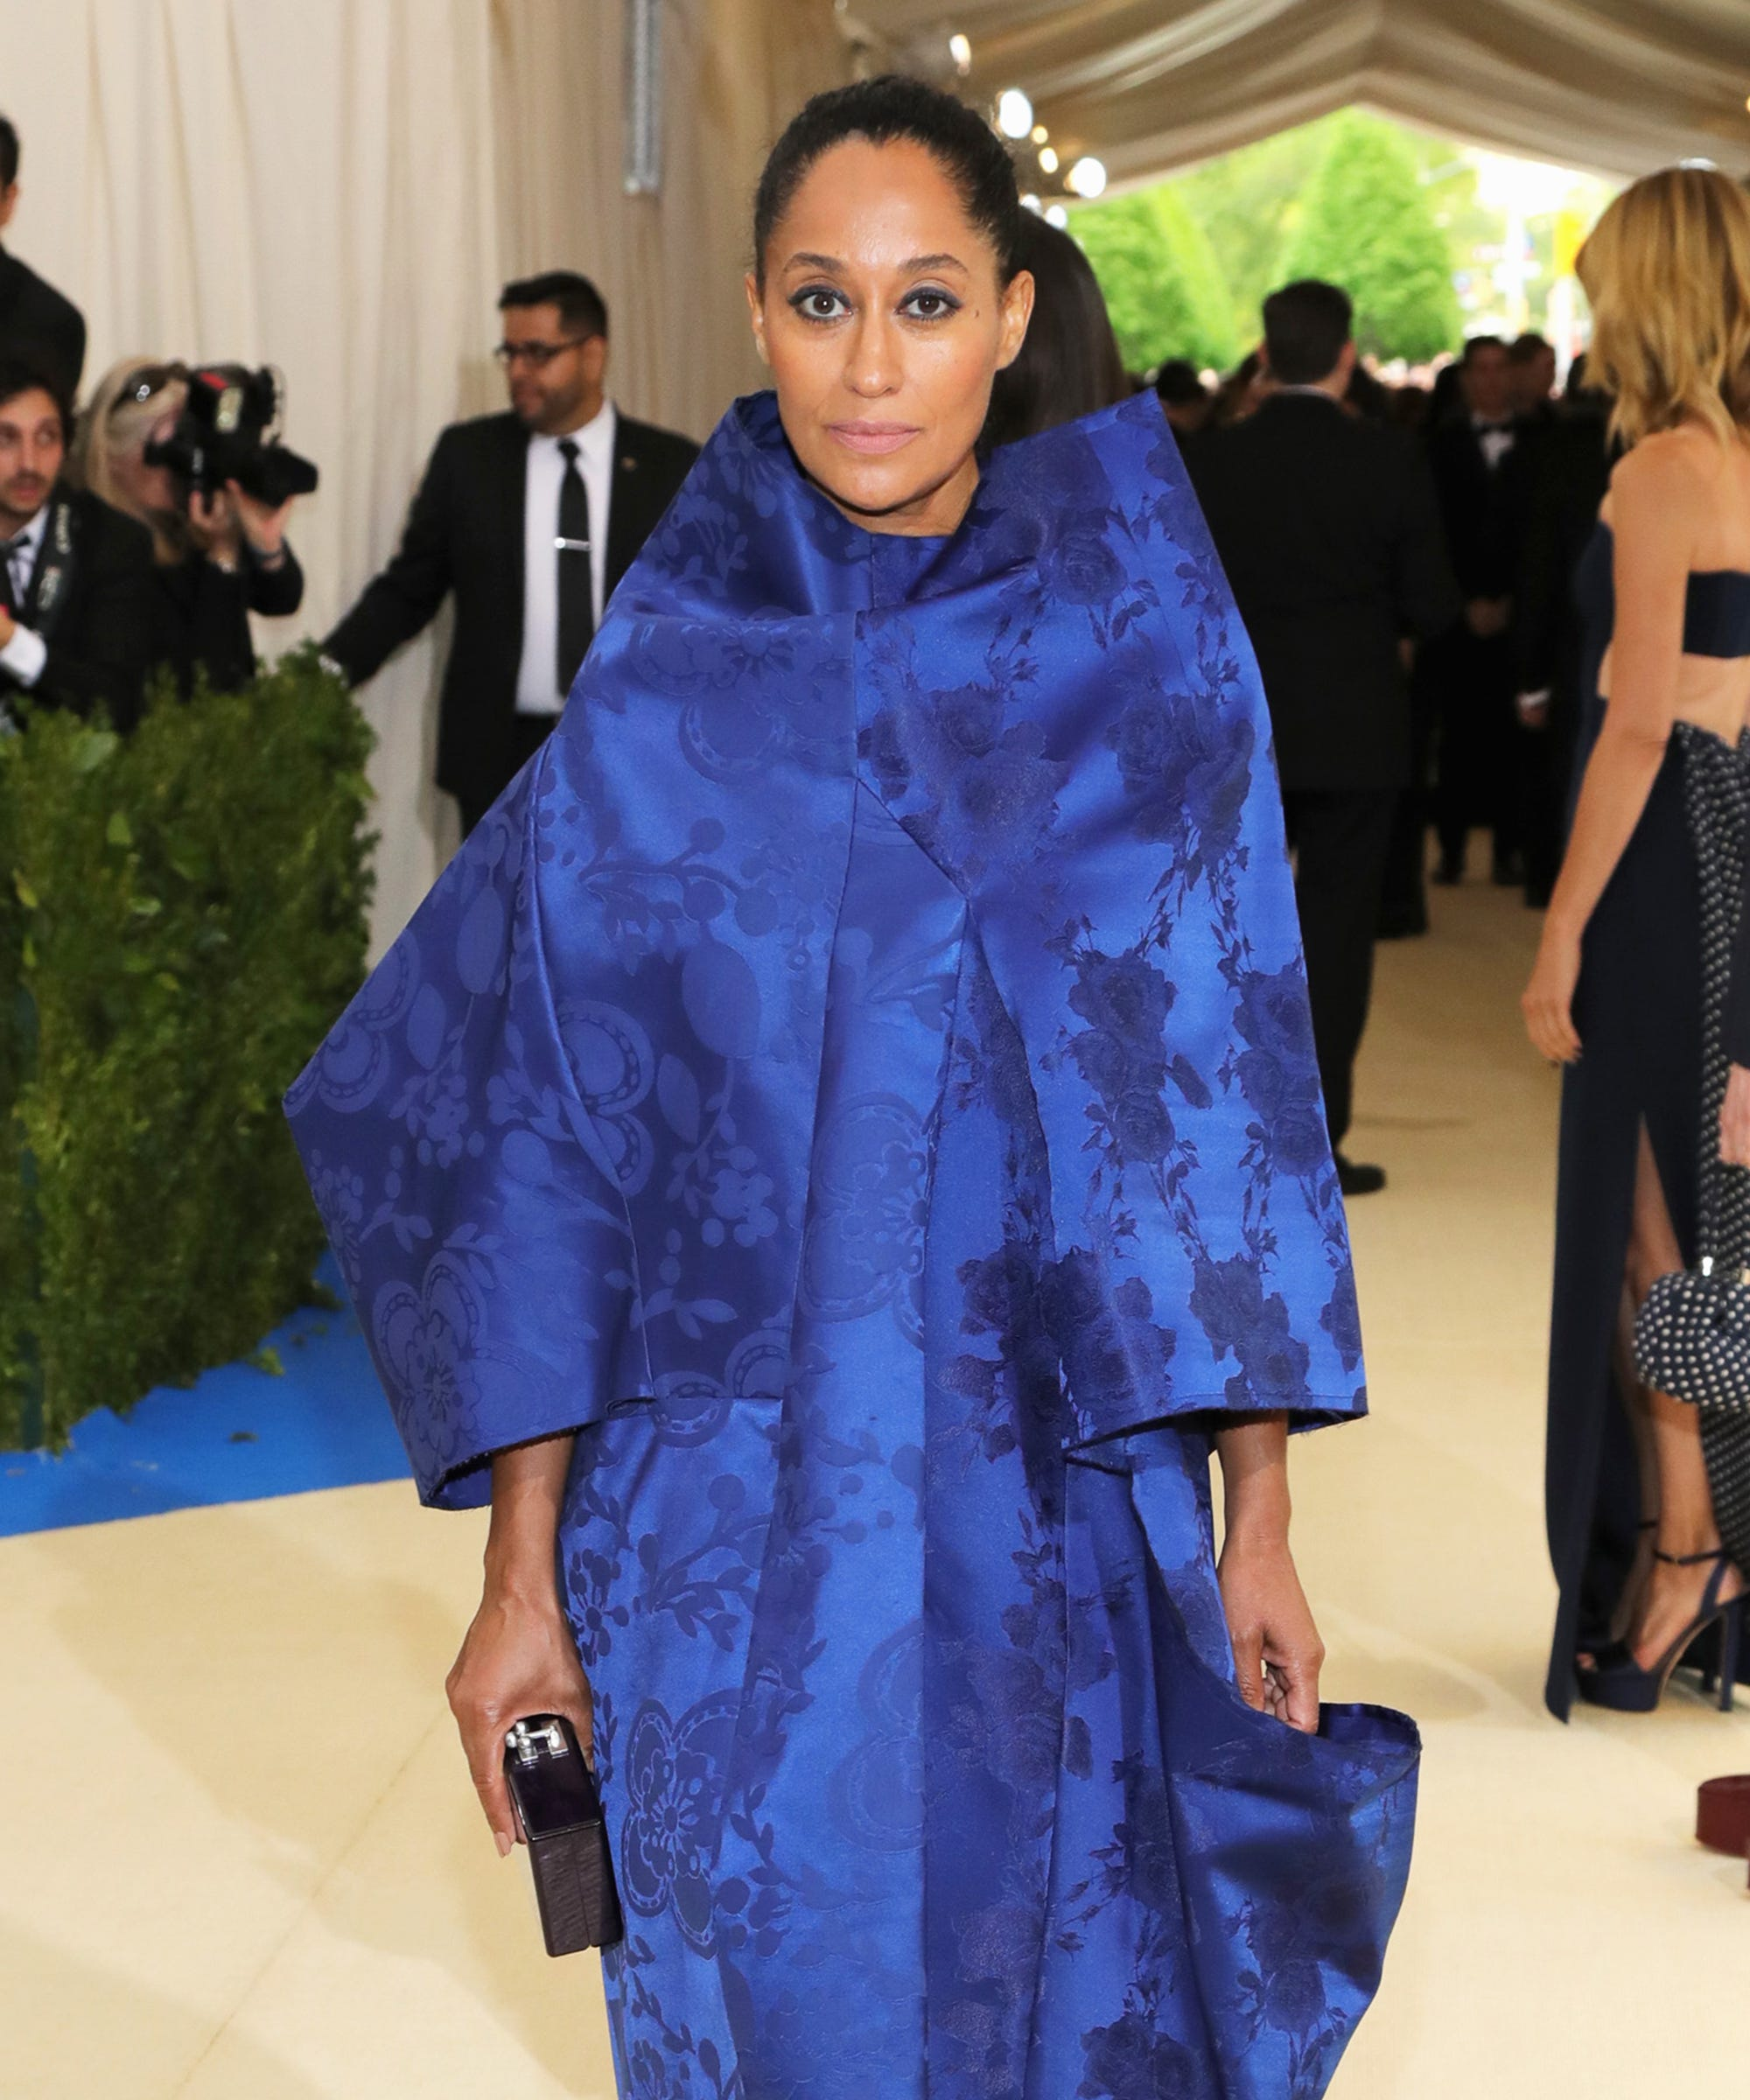 The Most Noteworthy Looks From The 2017 Met Gala